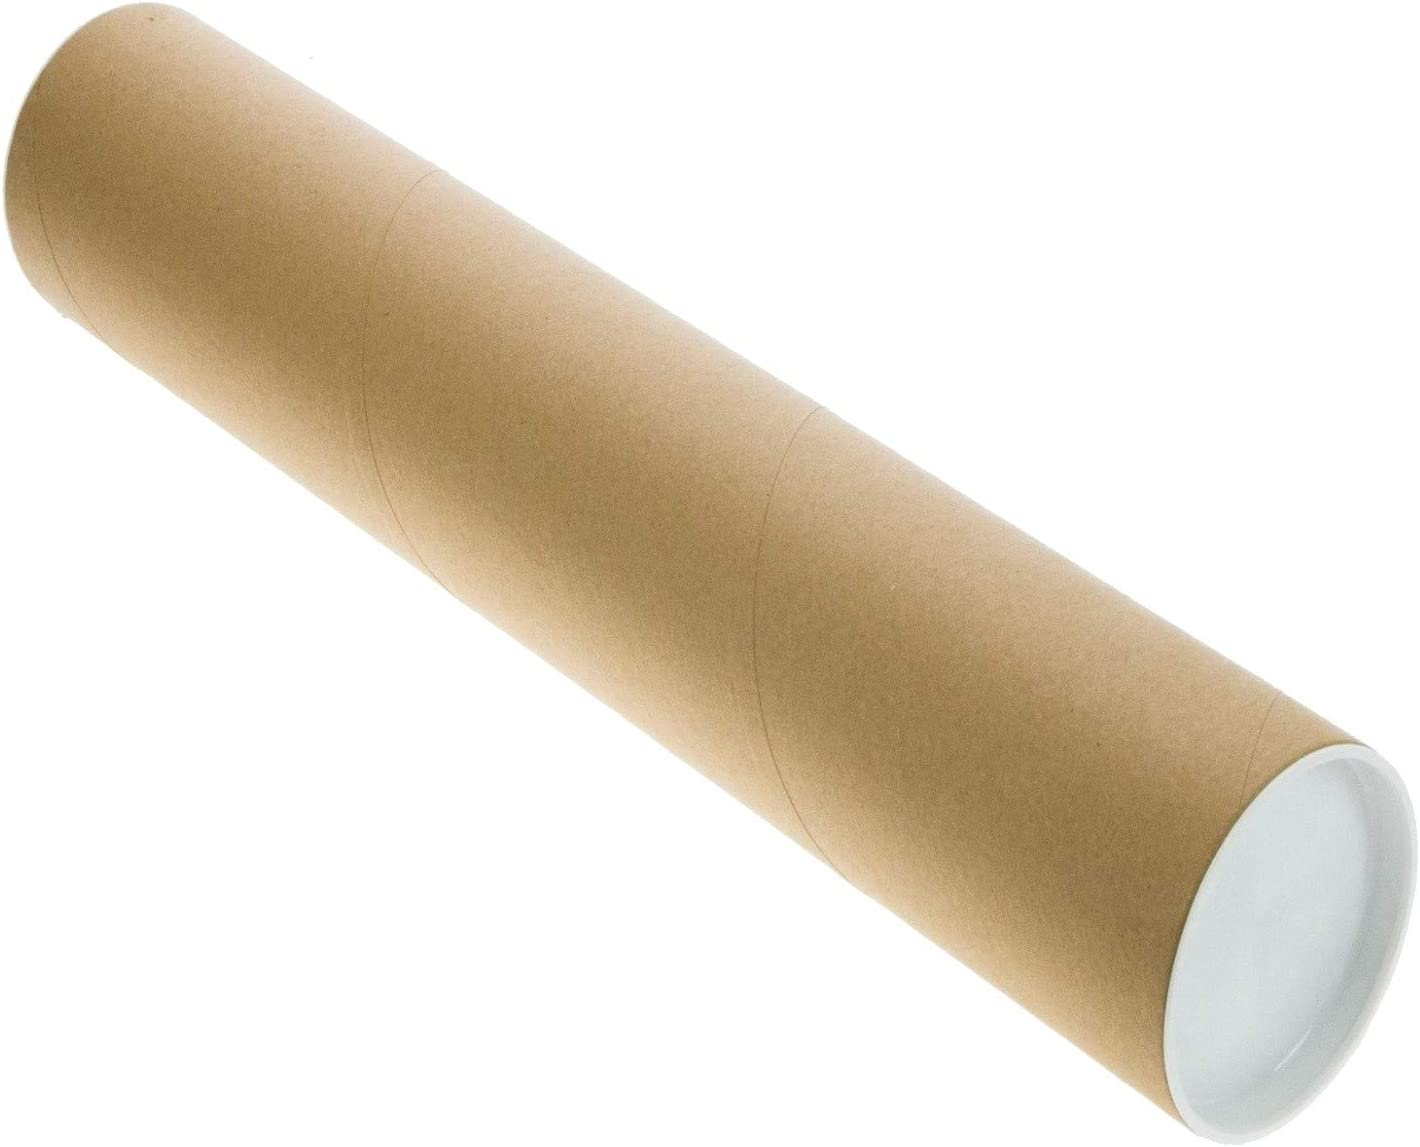 Mailing Tubes with Caps 3-inch x 36 Pack Latest safety item inch 3 usable Length